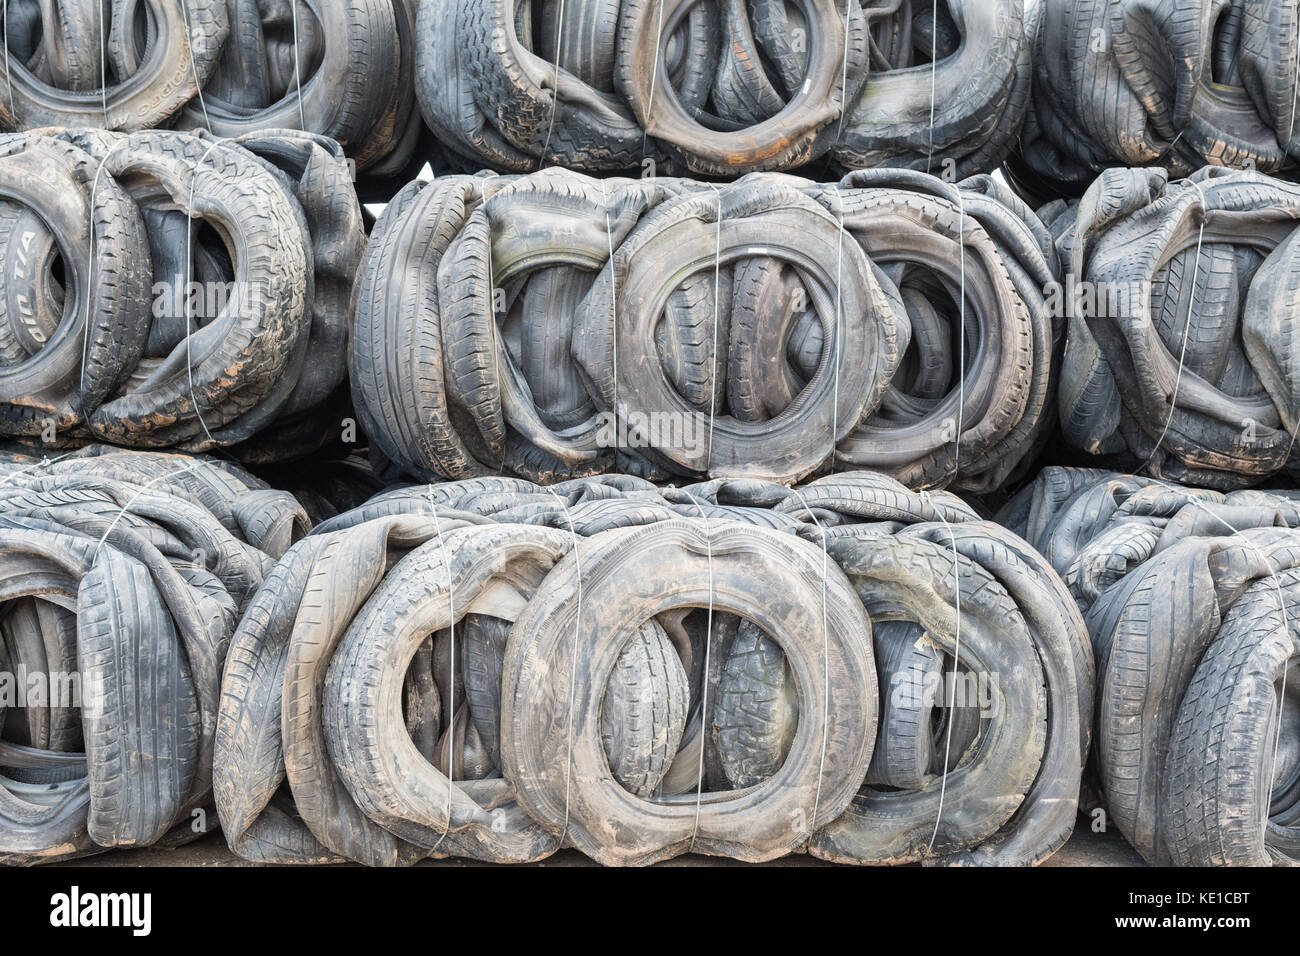 Tyre recycling - tyre bales for use in construction and/or sea defences - Stock Image